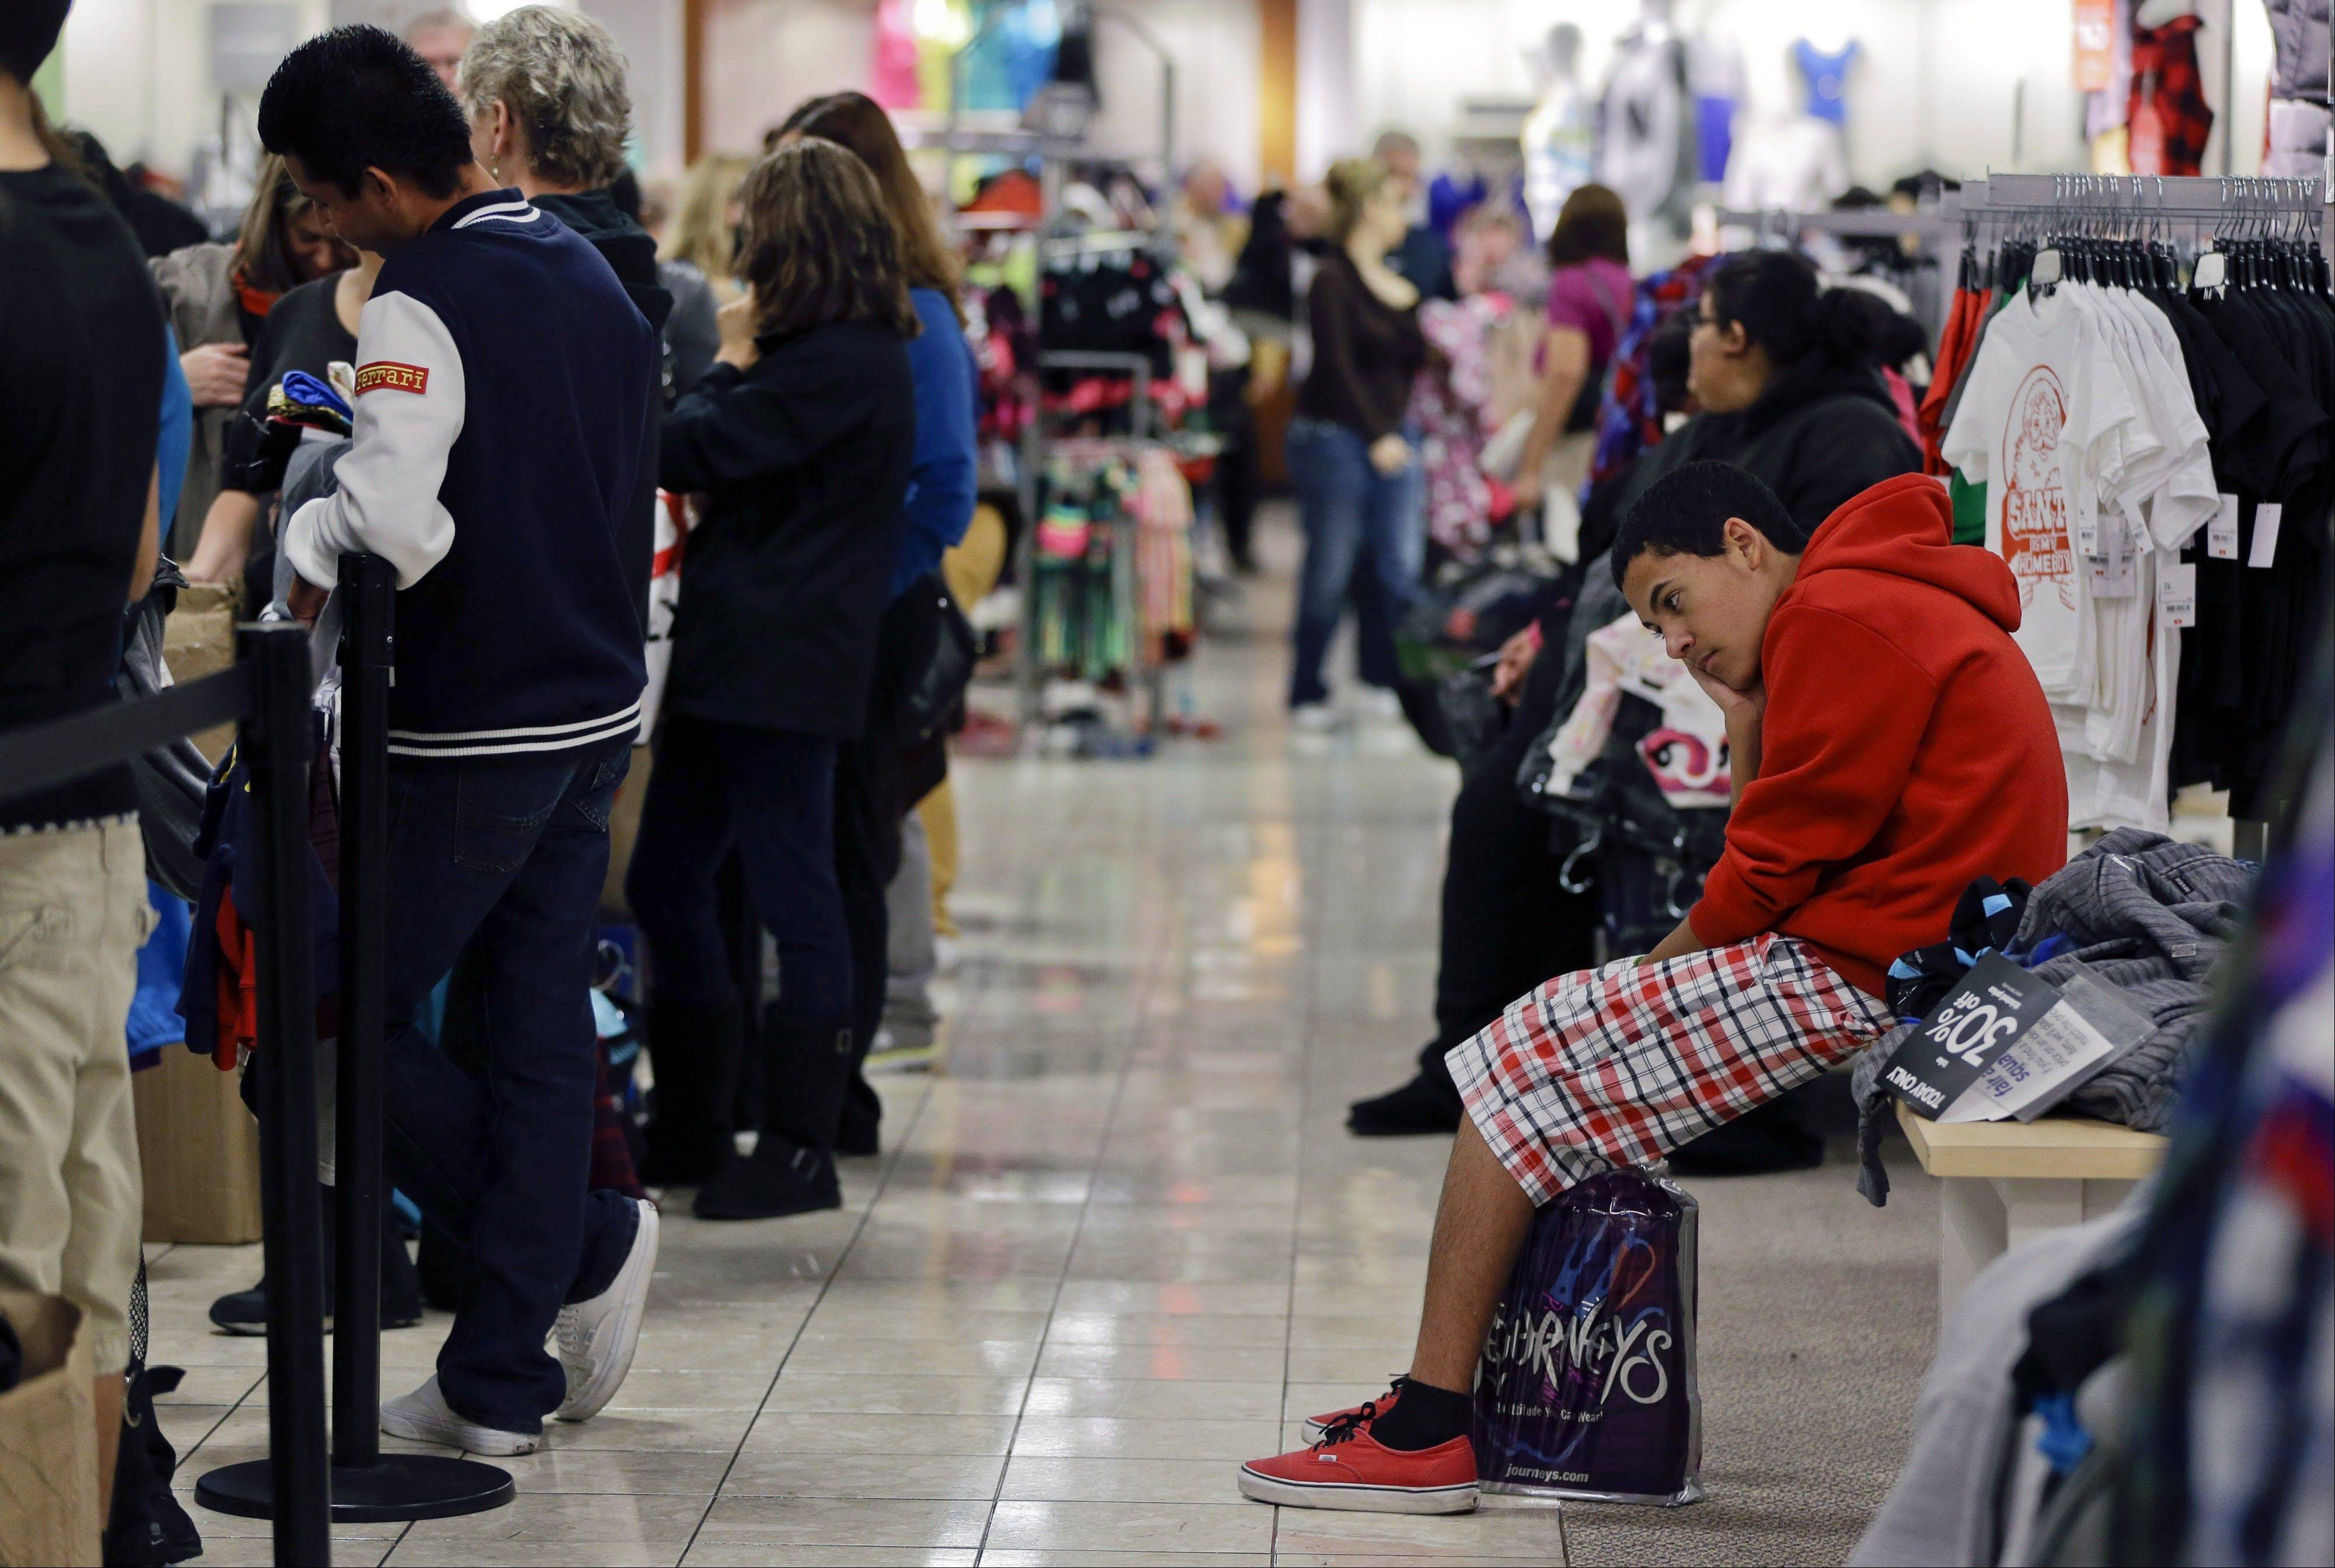 Major retailers reported weak sales in November as a strong start the holiday shopping season over the Thanksgiving weekend wasn't enough to fully offset a slow start to the month caused by Superstorm Sandy.